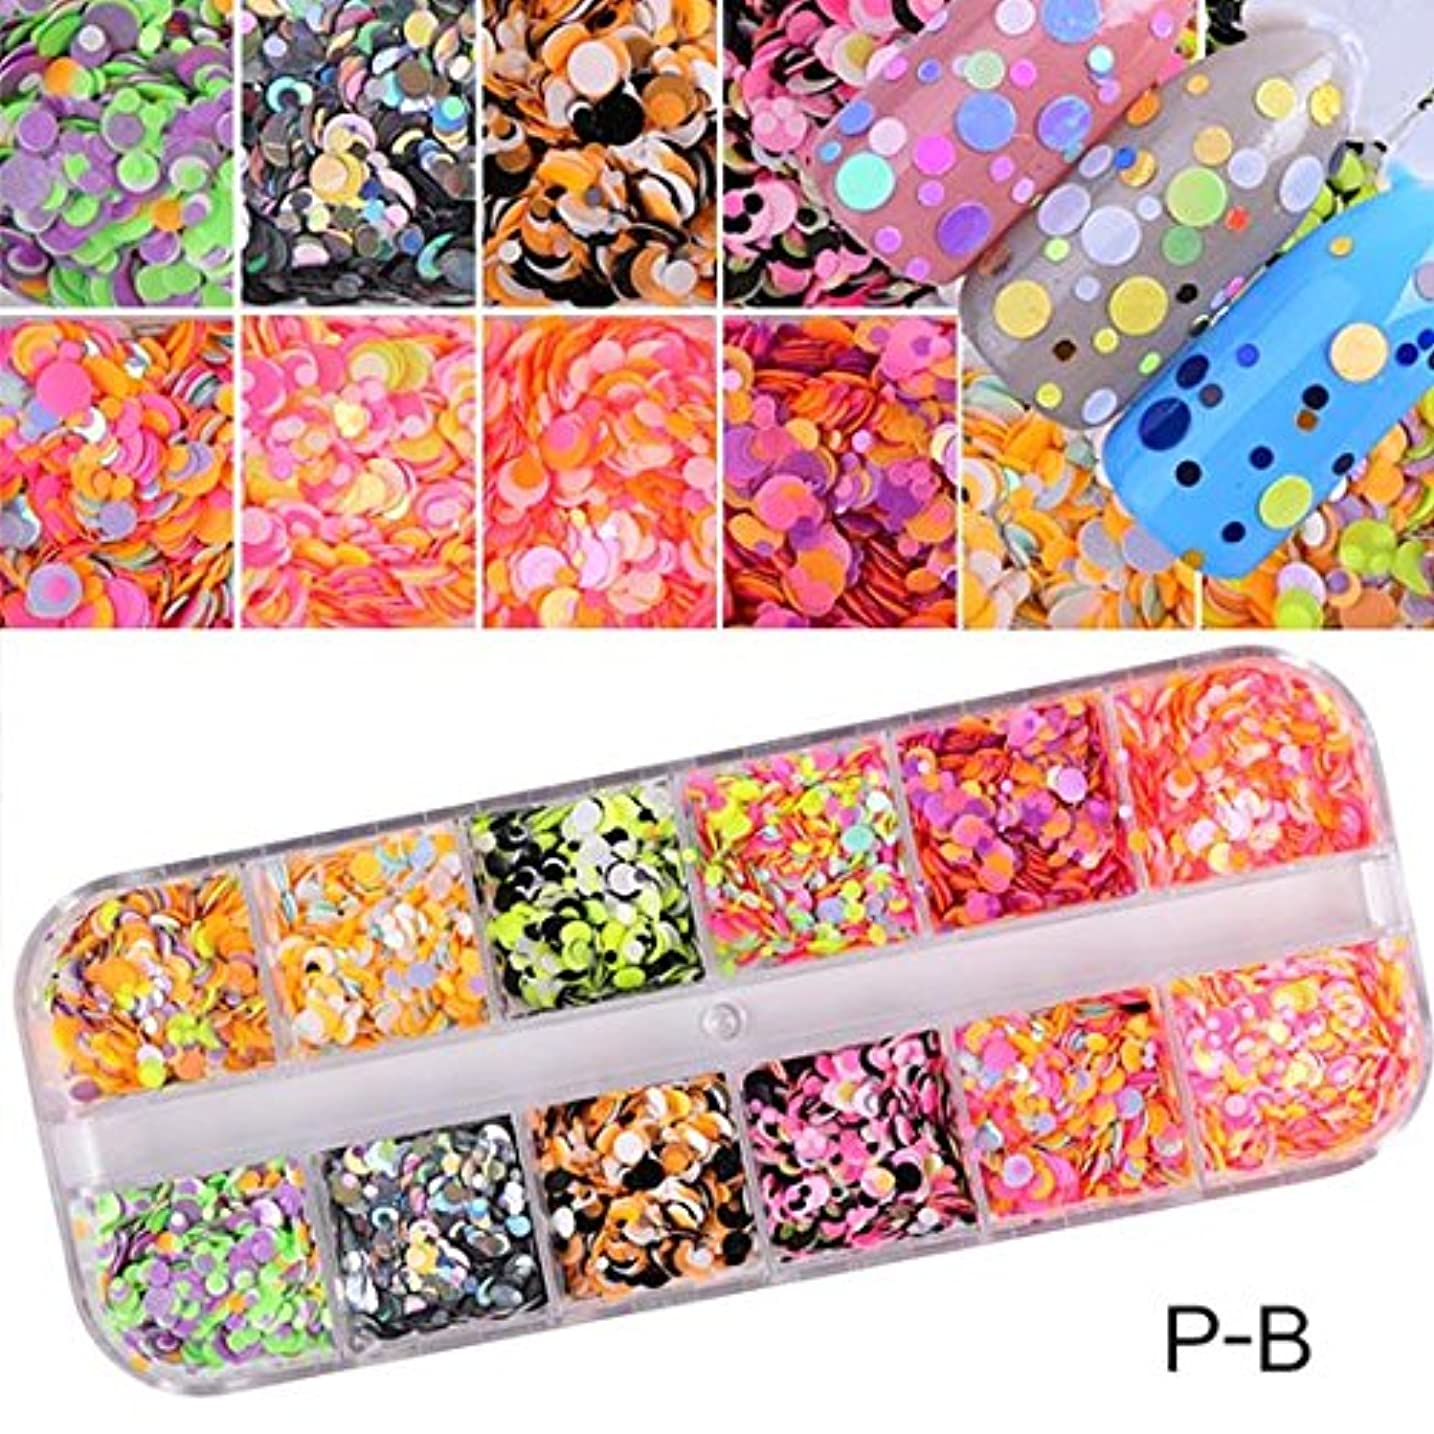 1 Set Dazzling Round Nail Glitter Sequins Dust Mixed 12 Grids 1/2/3mm DIY Charm Polish Flakes Decorations Manicure...